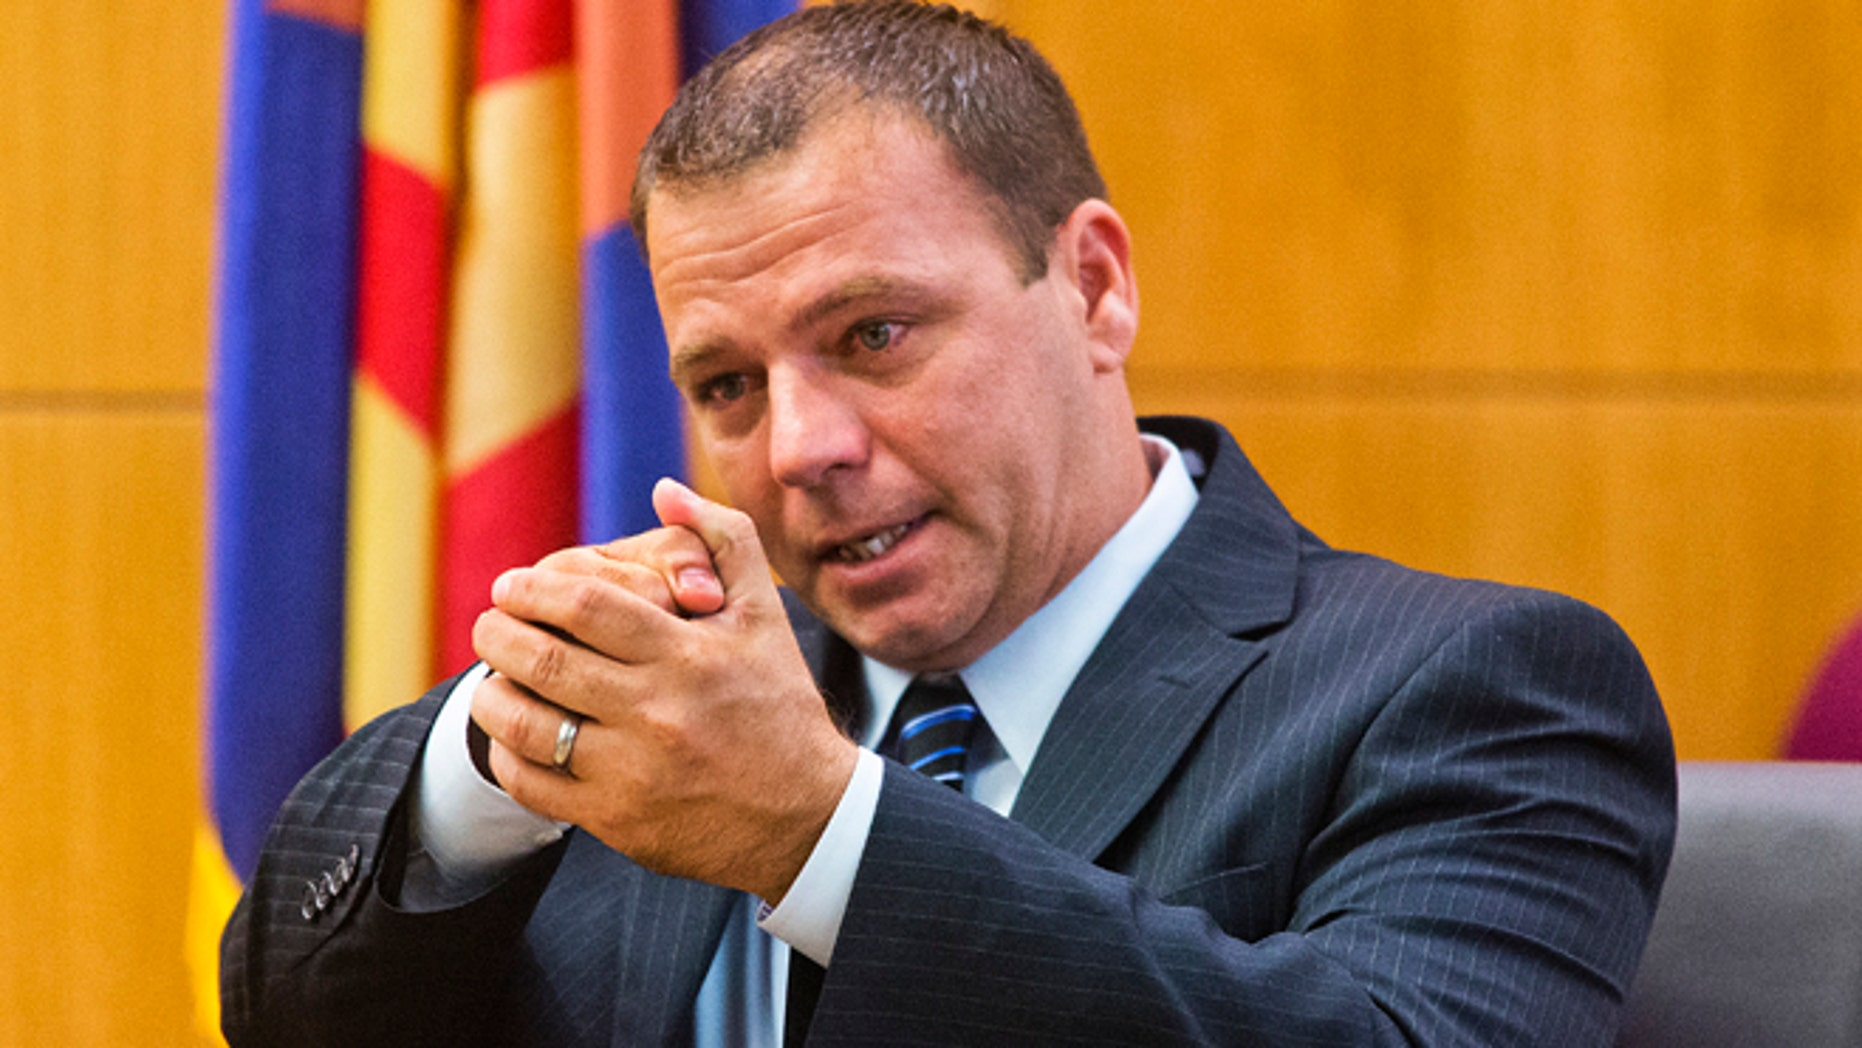 Sept. 3, 2013: Phoenix Police Officer Richard Chrisman testifies about firing his weapon at Danny Frank Rodriguez in Oct. 2010  in the living room of a South Phoenix trailer in Maricopa County Superior Court in Phoenix.